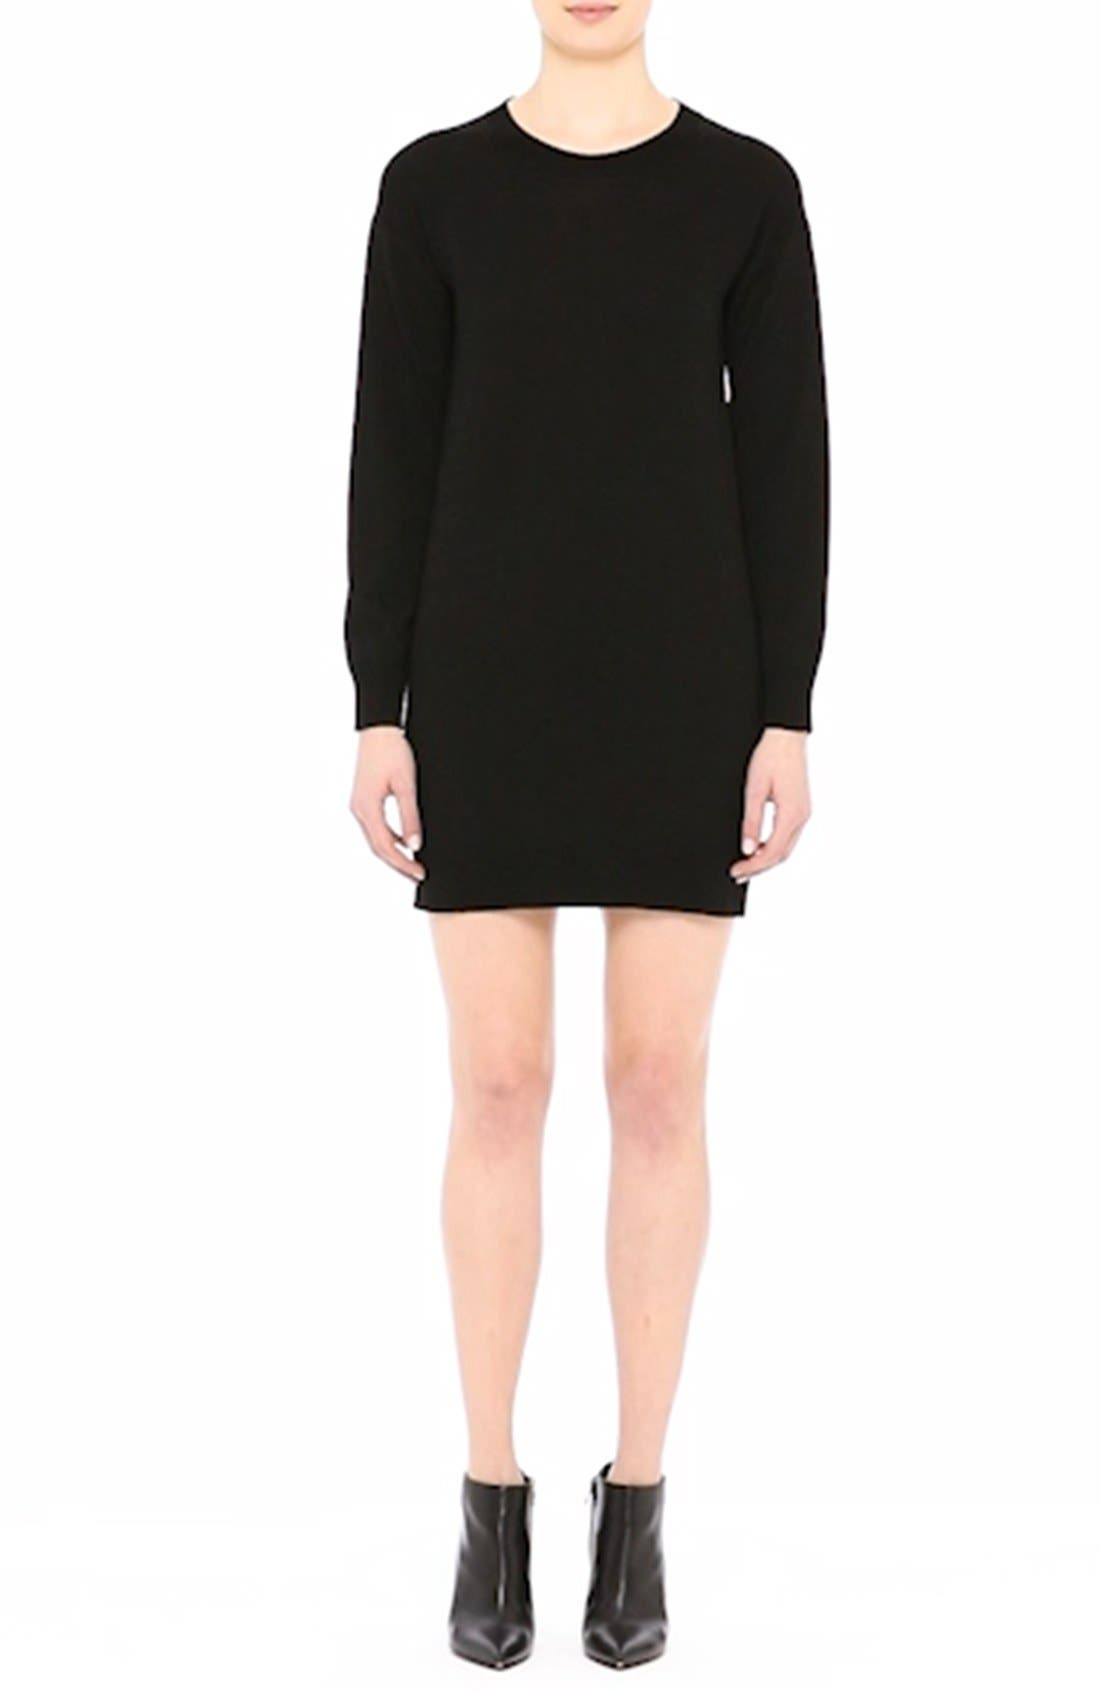 Alewater Elbow Patch Merino Wool Dress,                             Alternate thumbnail 9, color,                             BLACK